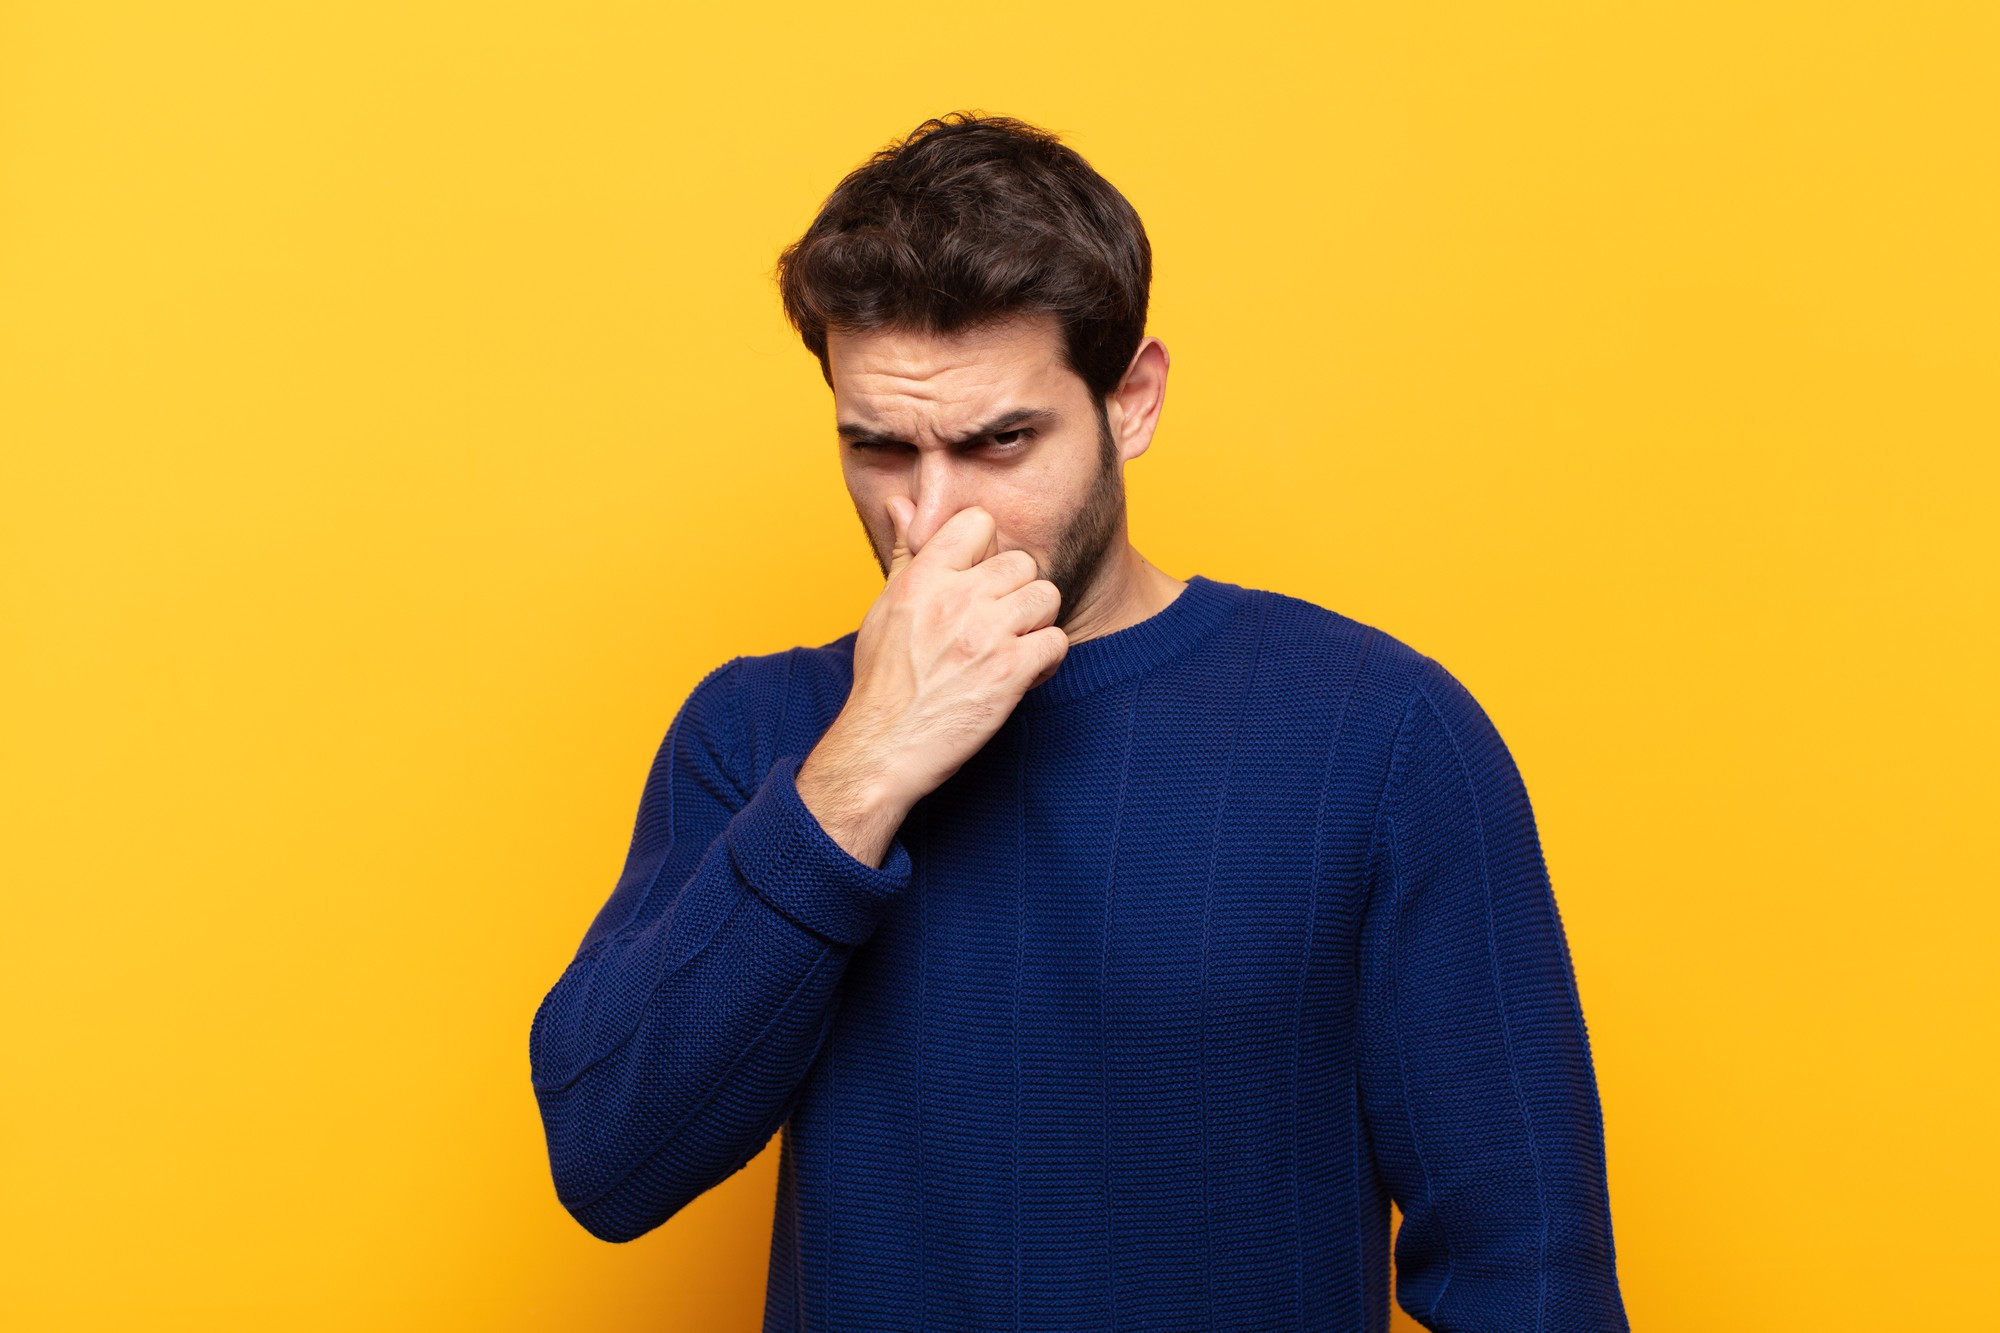 Man holding nose and grimacing